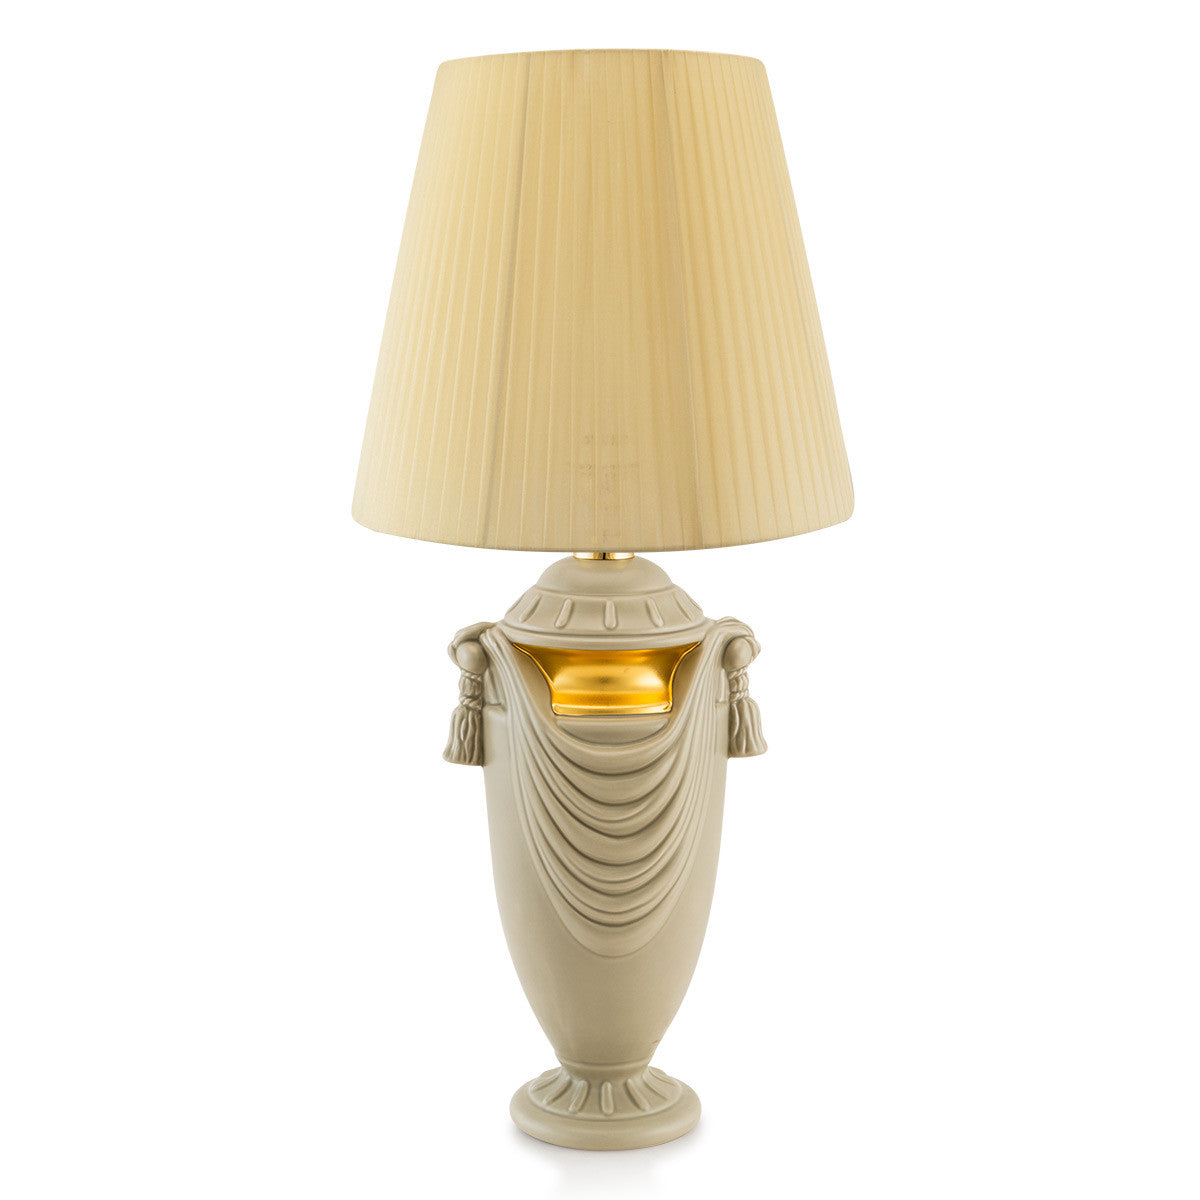 Grey ceramic table lamp with drape